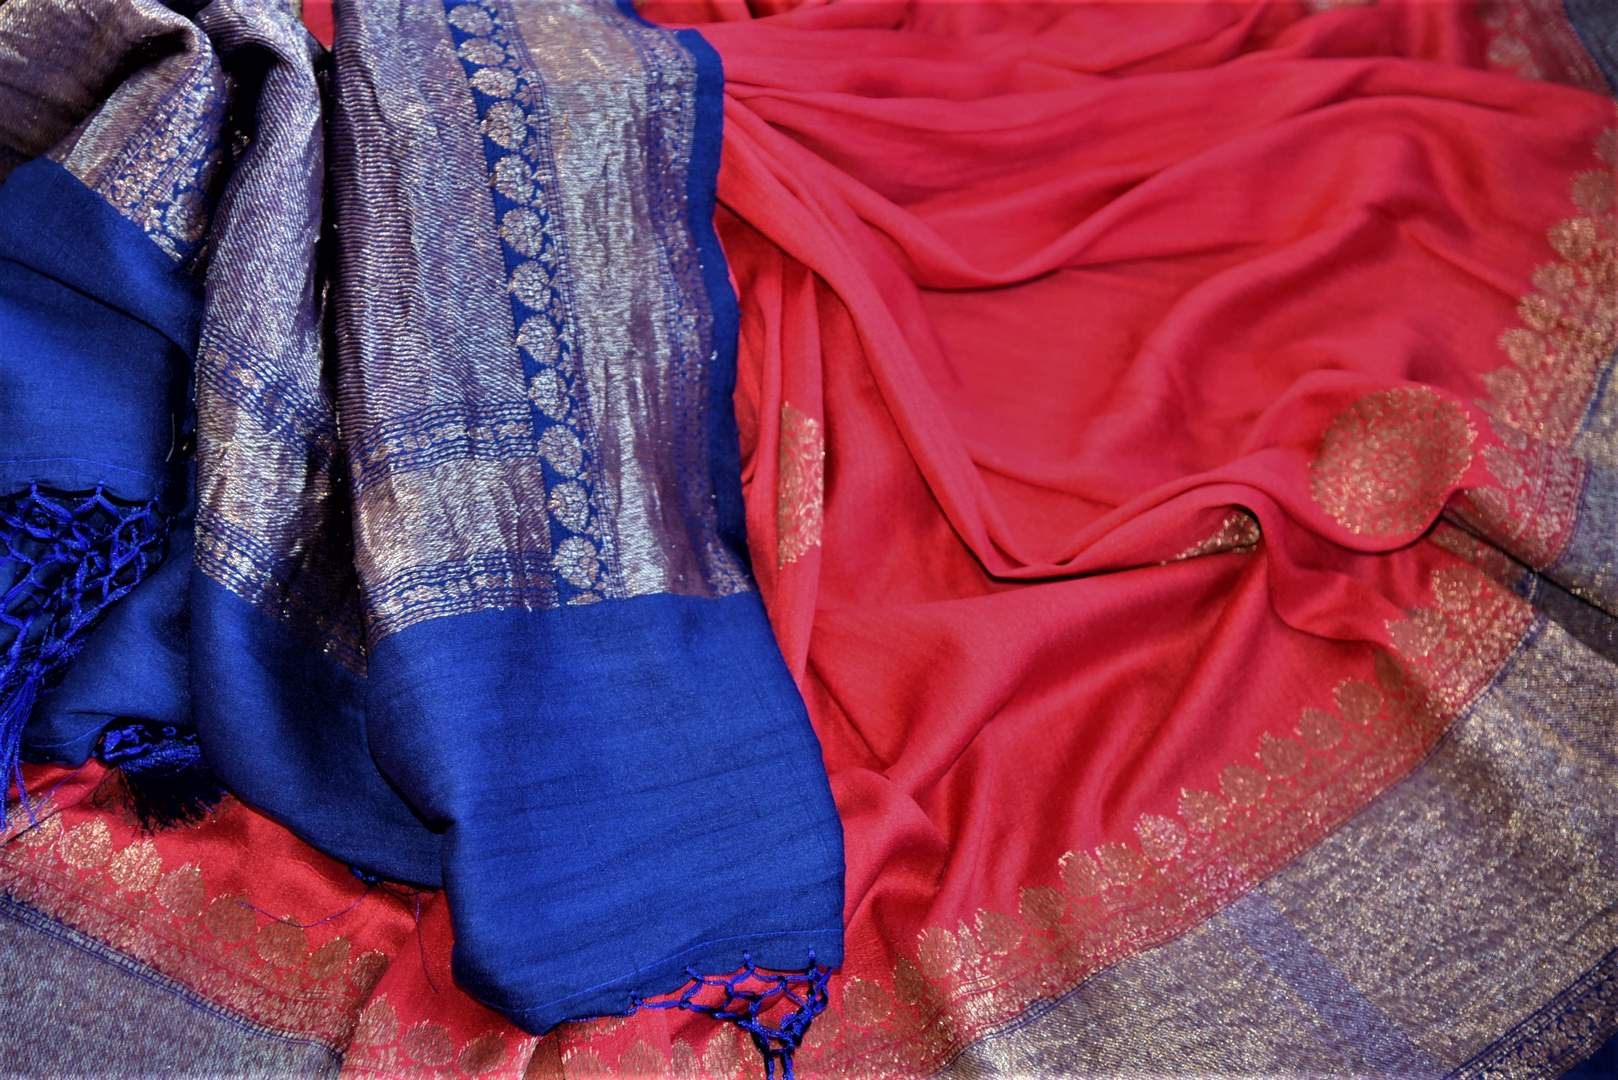 Buy red tussar Banarsi saree online in USA with blue antique zari border. Wear designer sarees, Banarasi sarees, handwoven tussar sarees on special occasions from Pure Elegance Indian clothing store in USA. -details